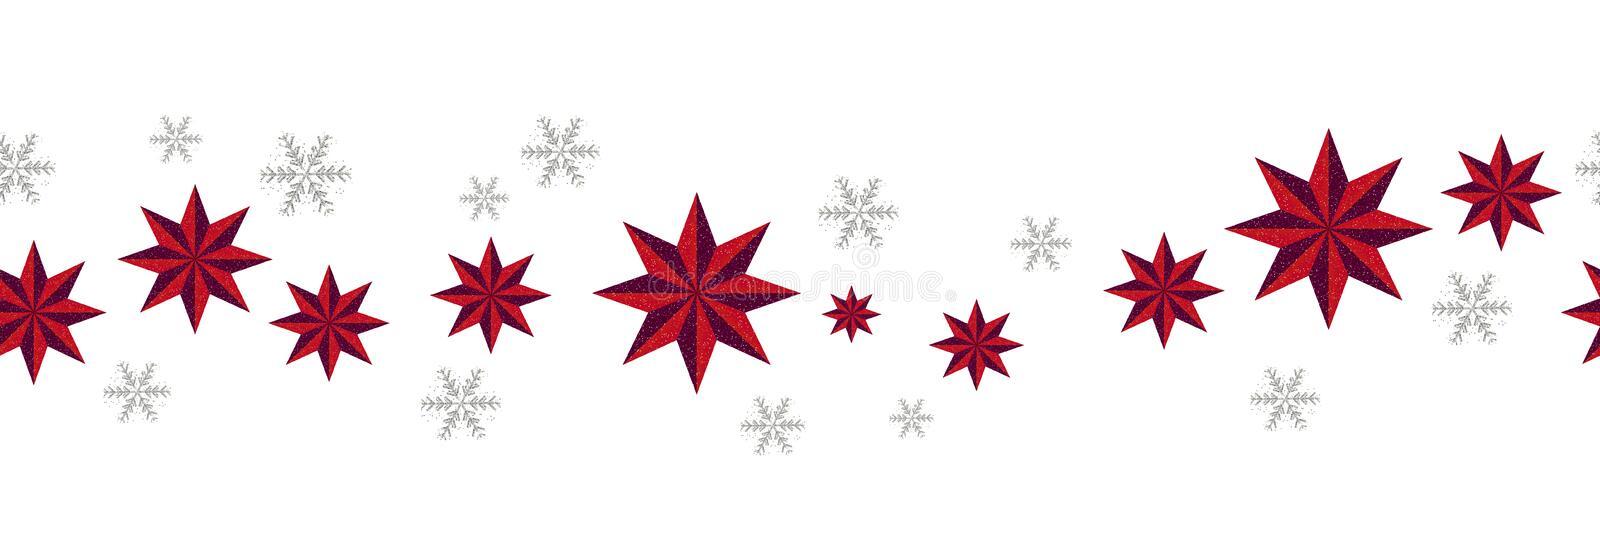 Christmas decoration seamless pattern. New Year border red stars and silver snowflakes on white background. Vector vector illustration